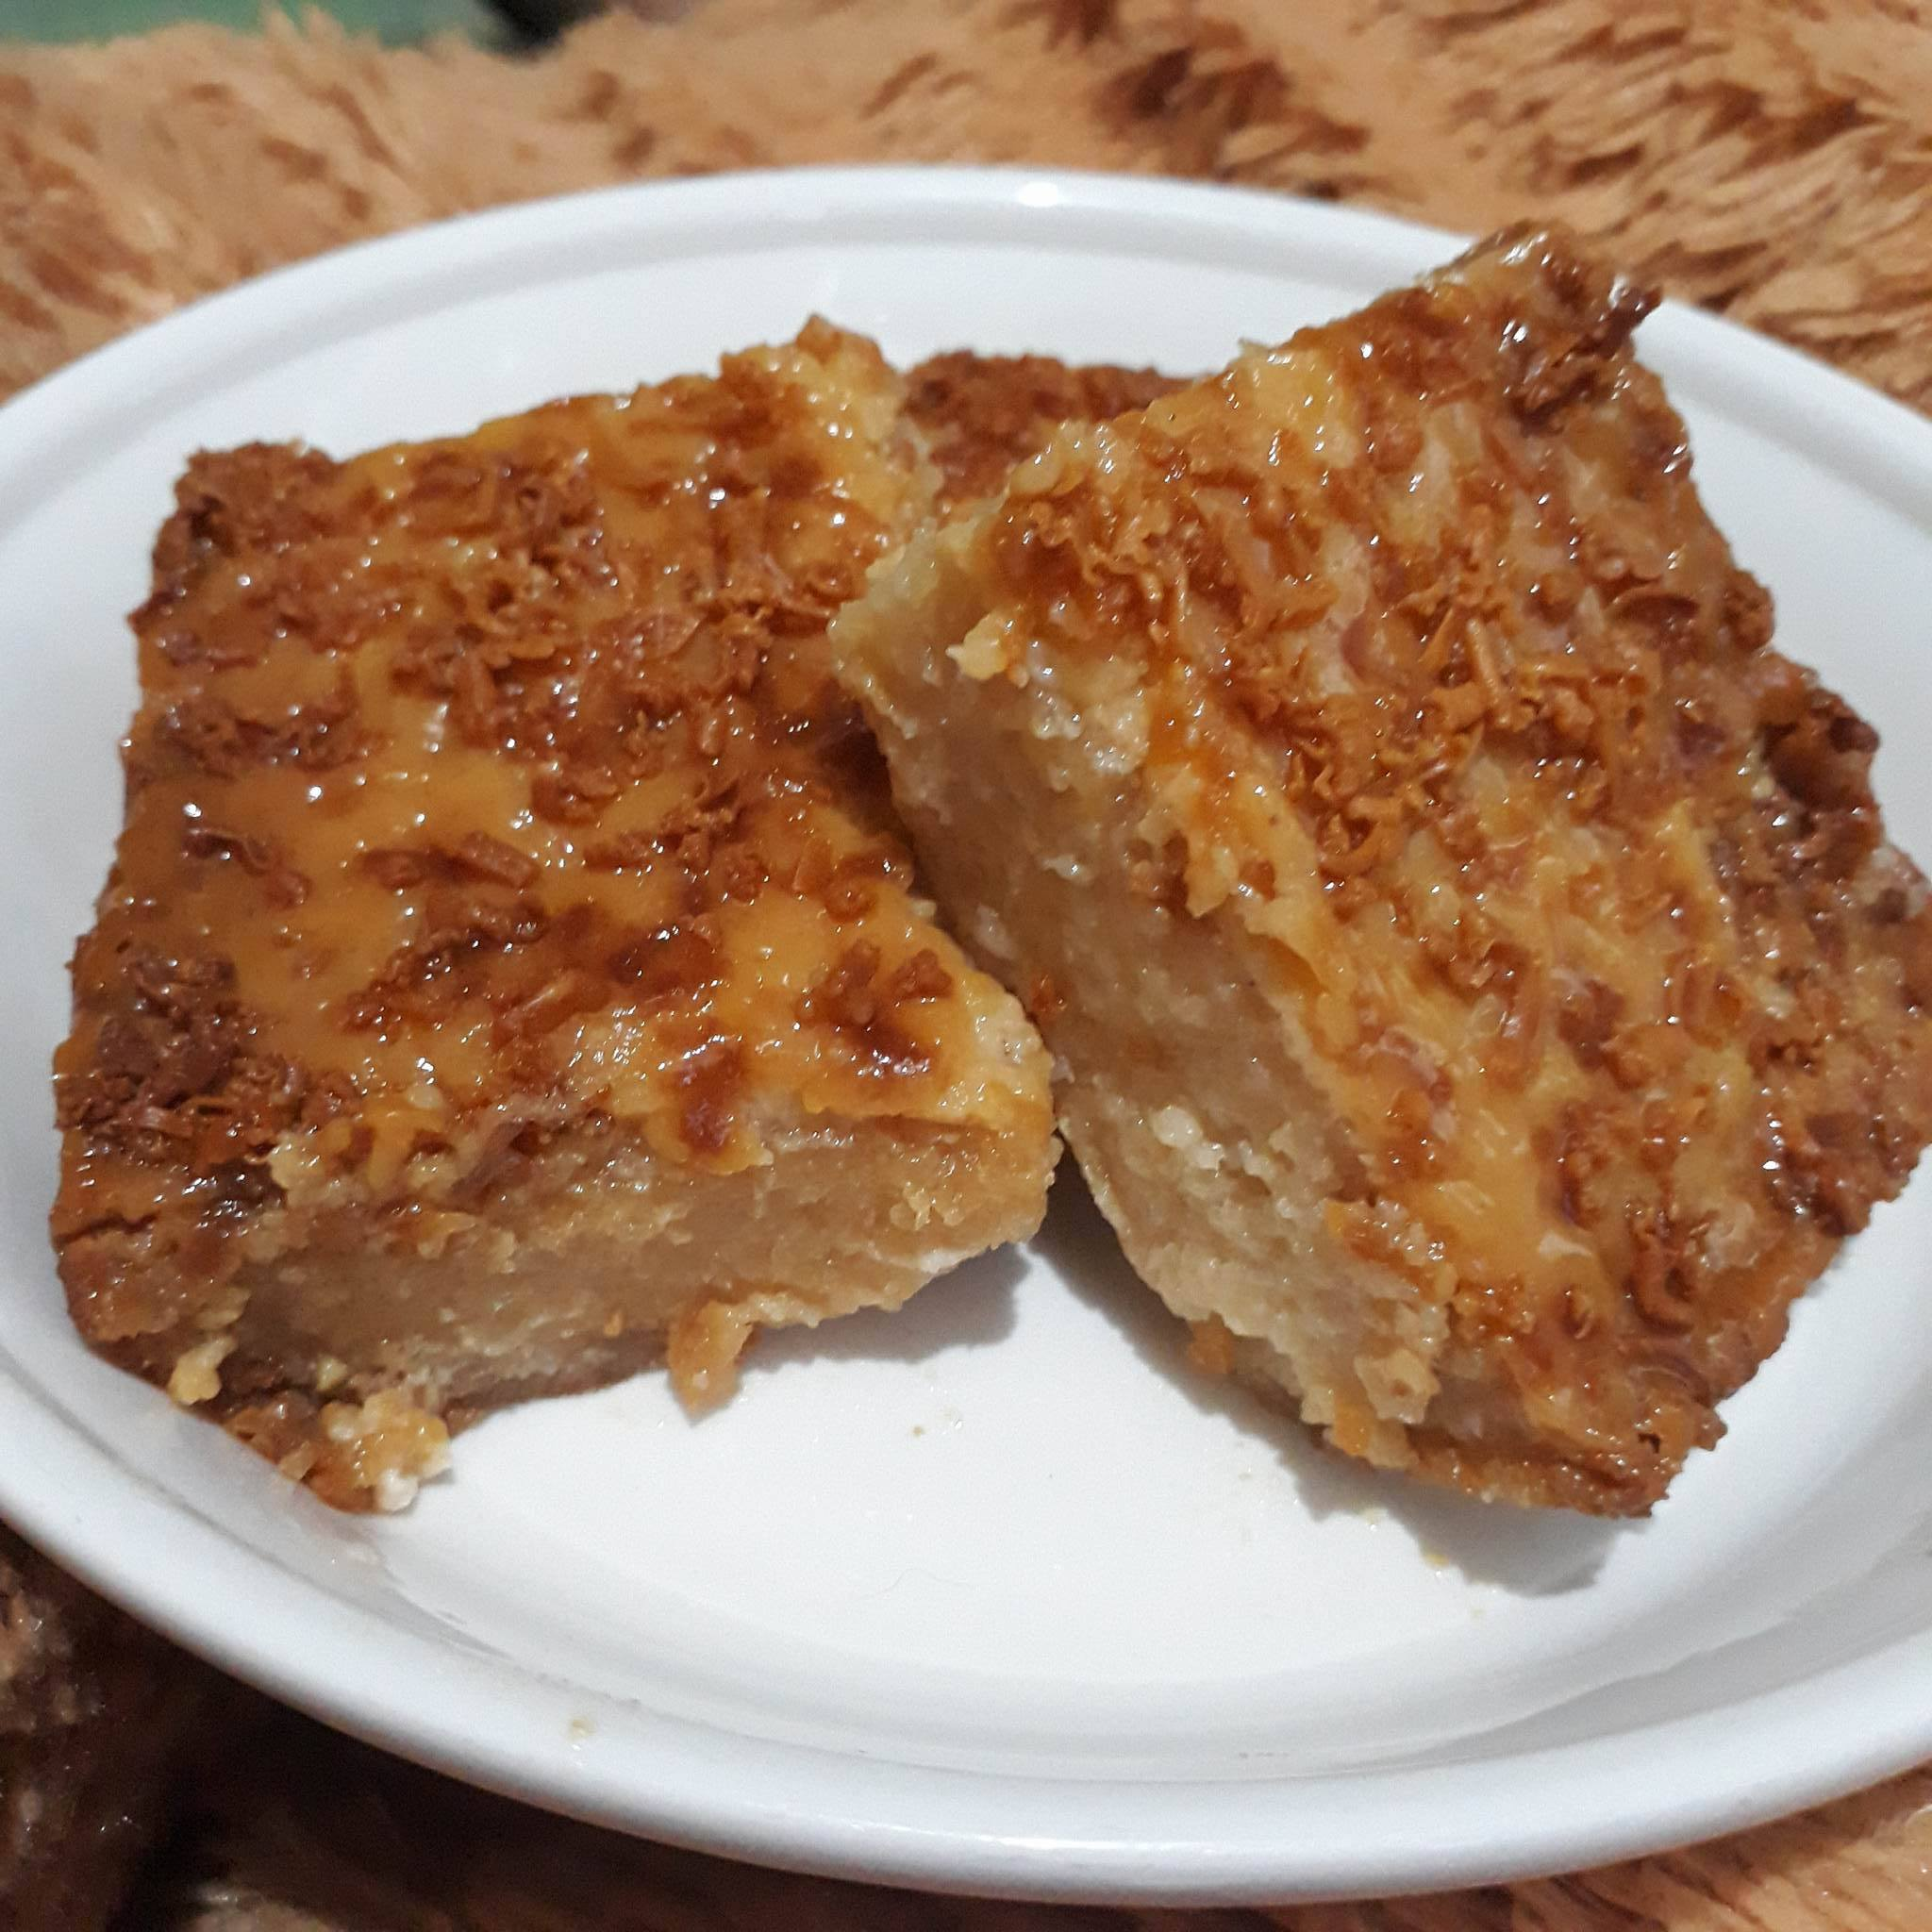 Picture of Baked Cassava Cake